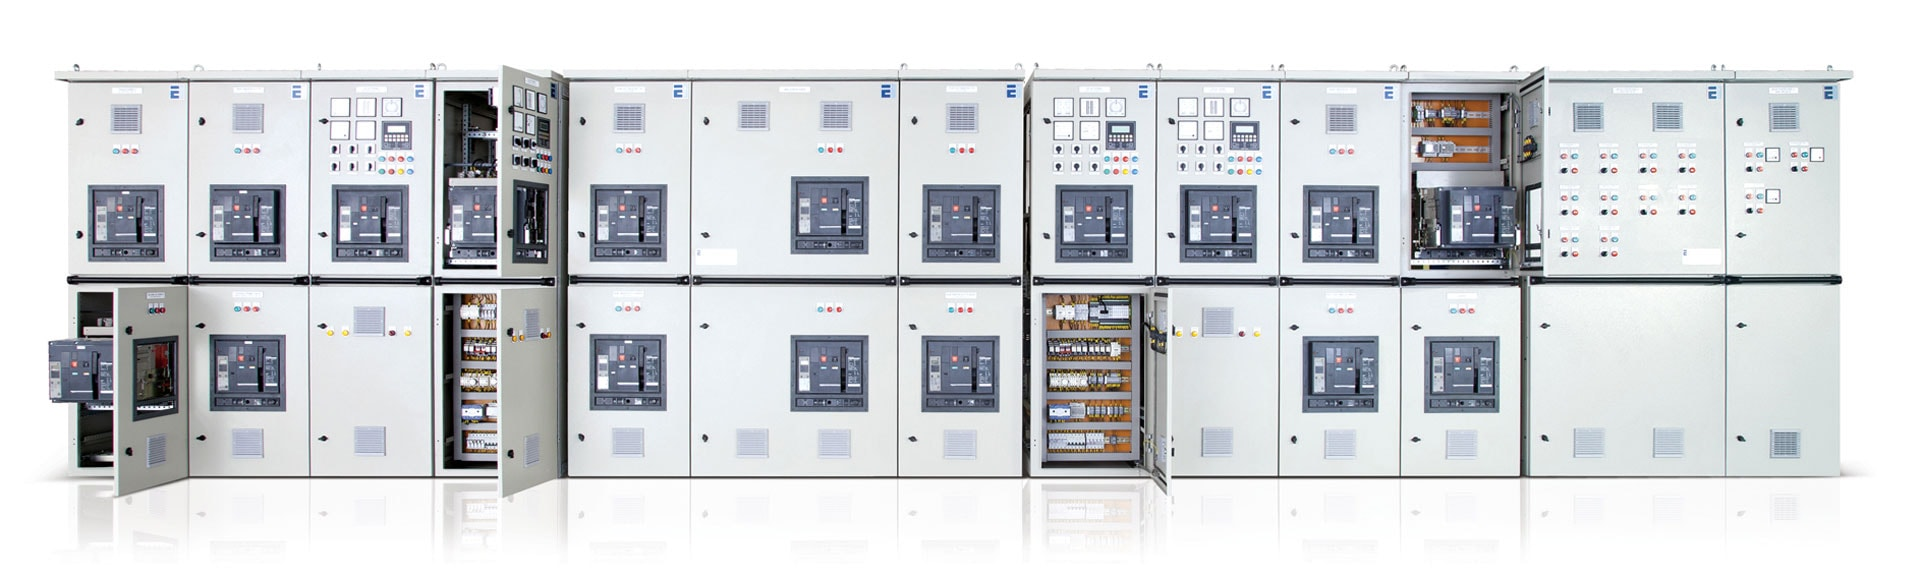 Main electrical switchboard for marine applications